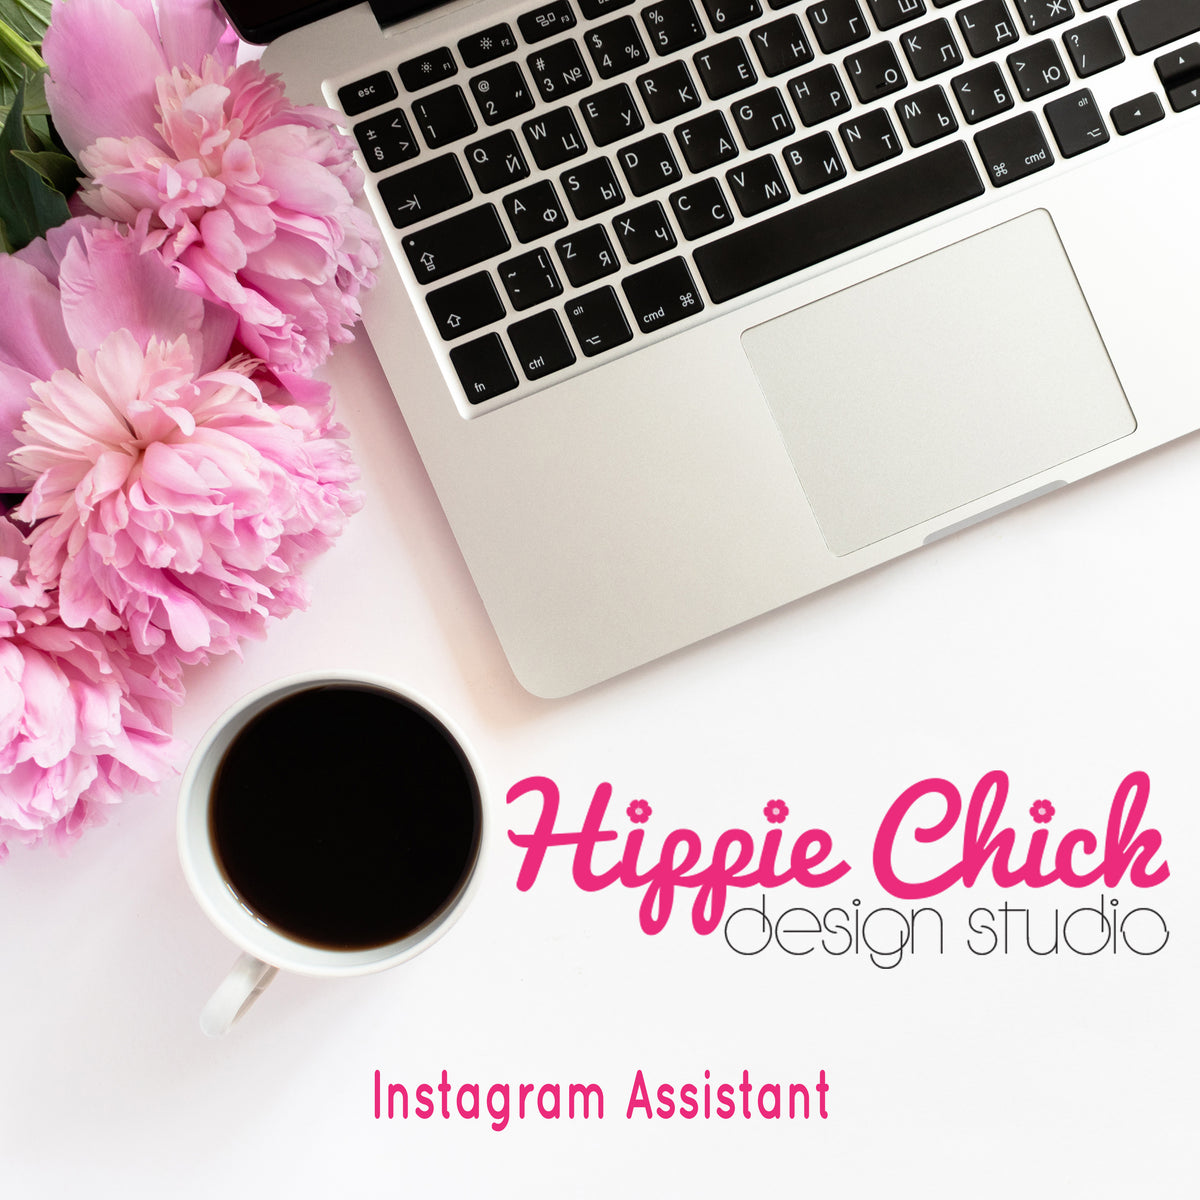 Hippie Chick Designs Instagram Assistant